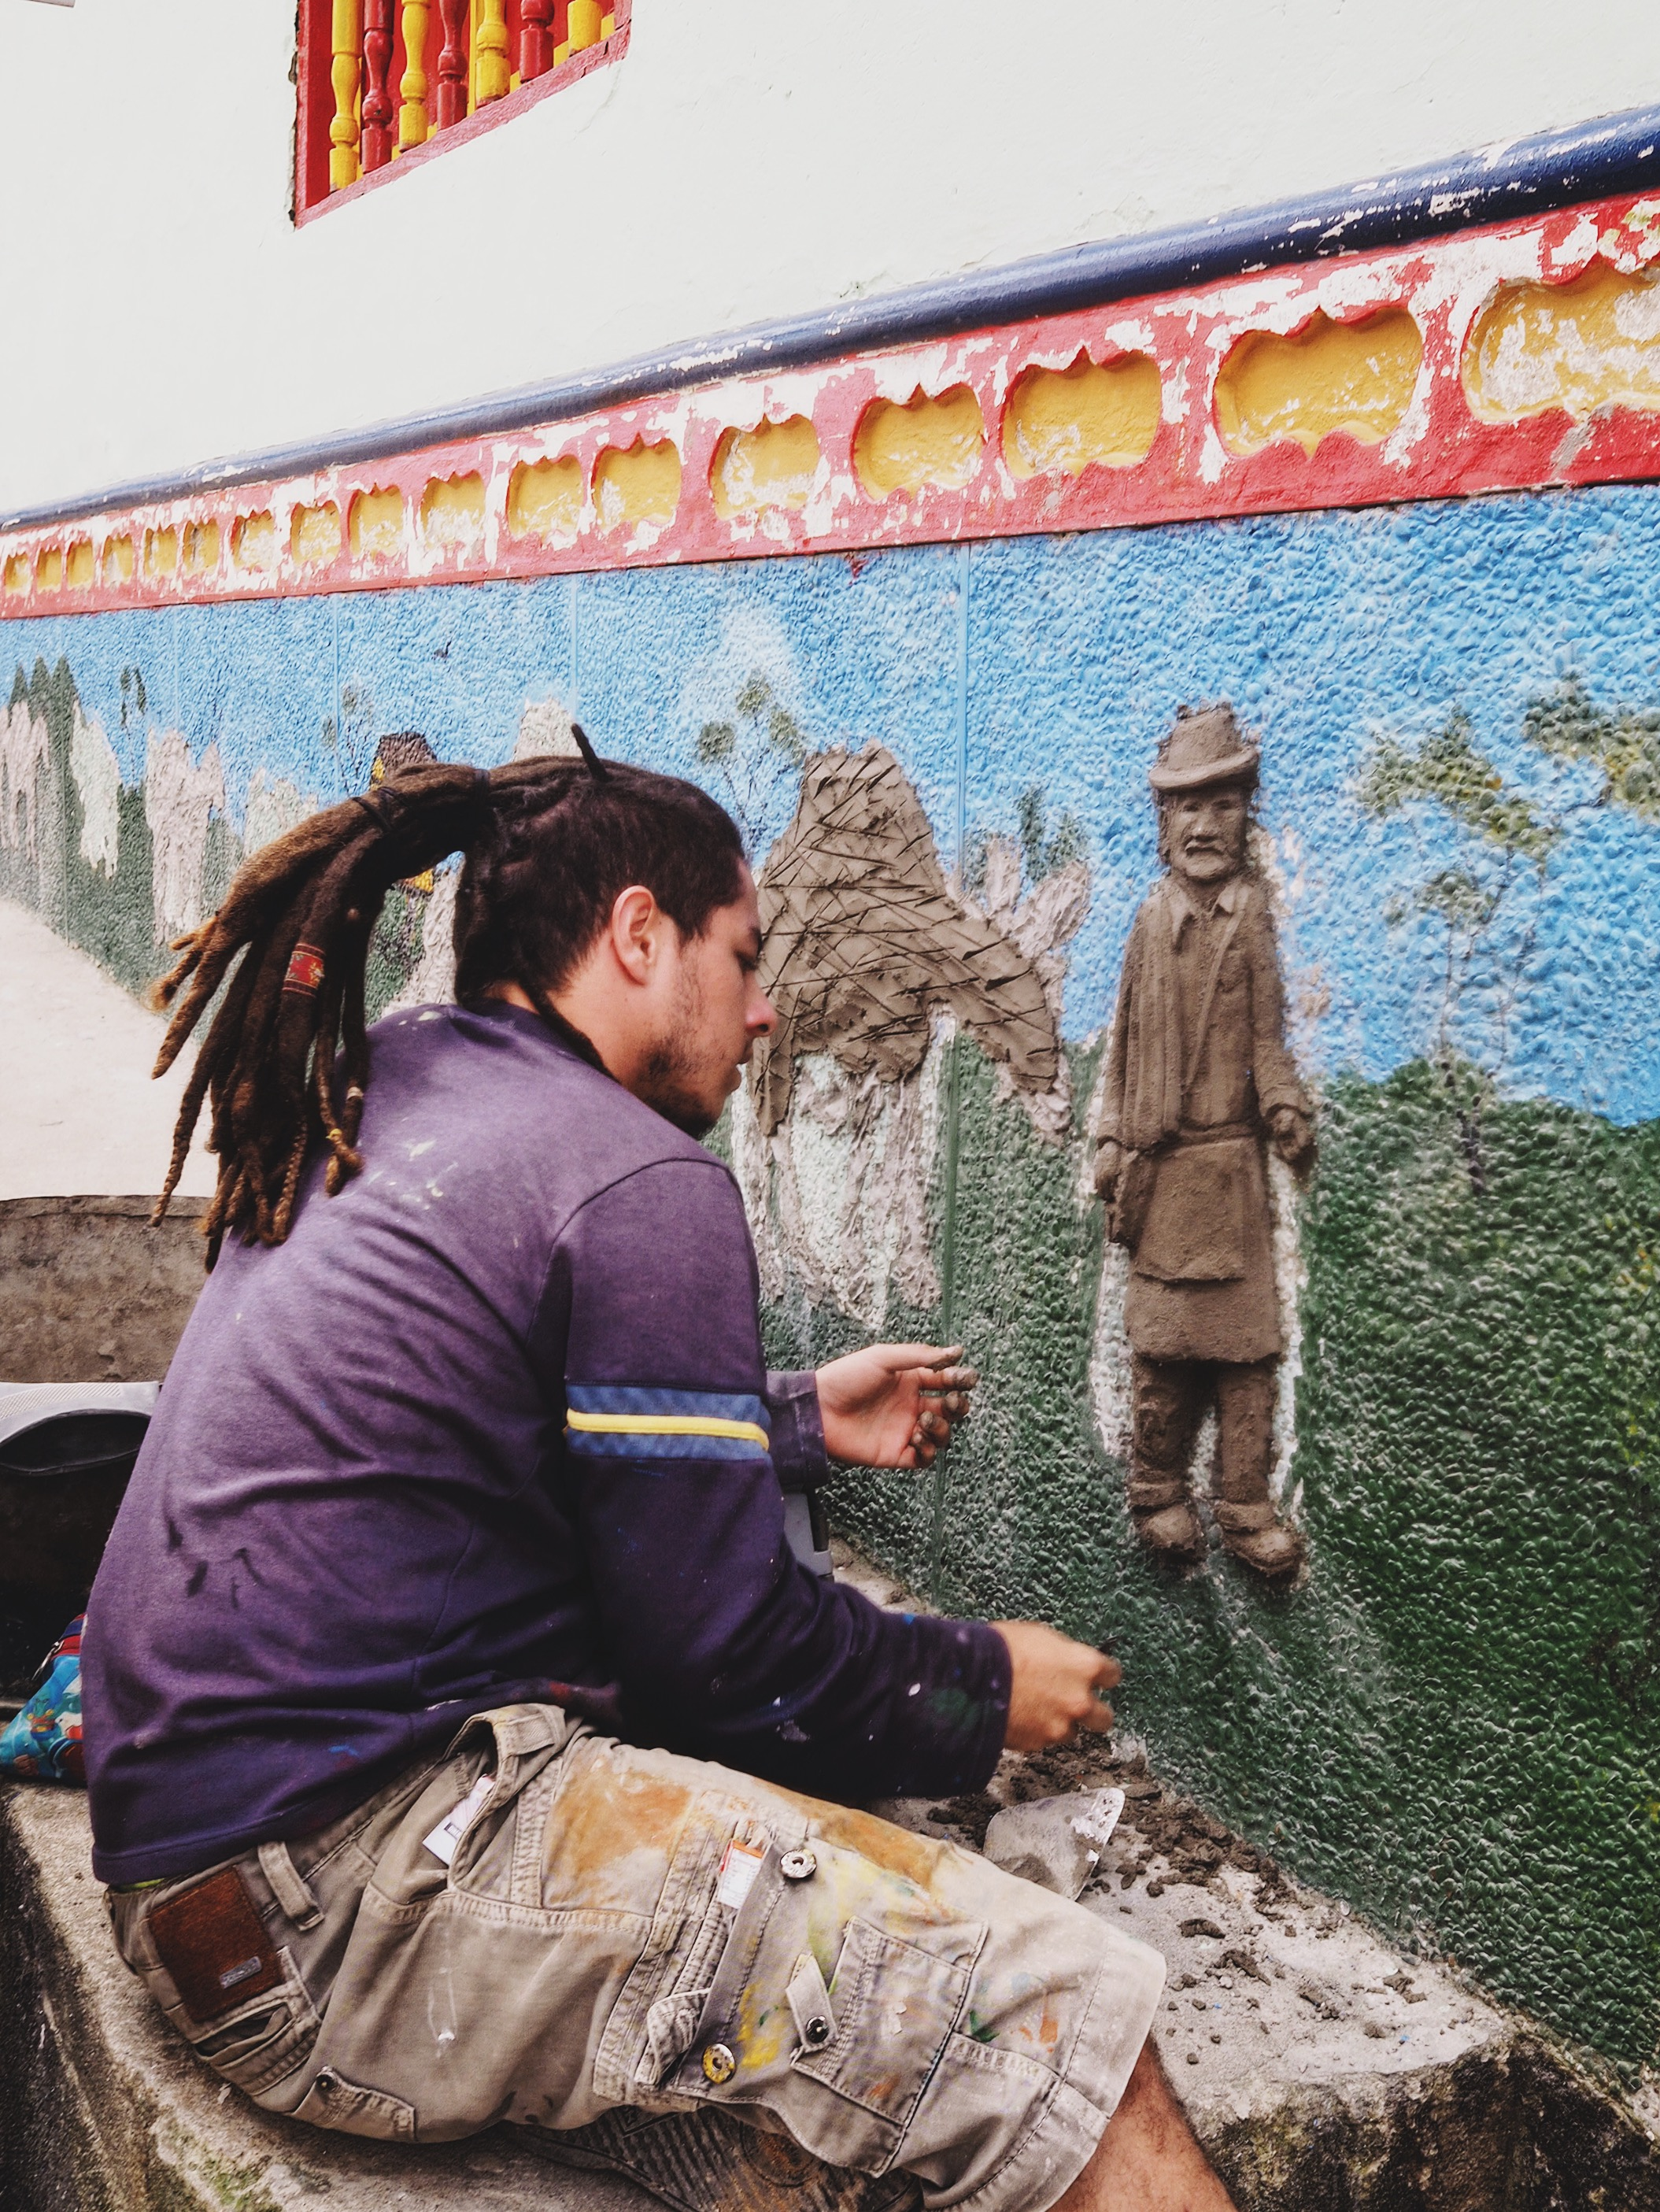 Local artist working on one of the town's facades